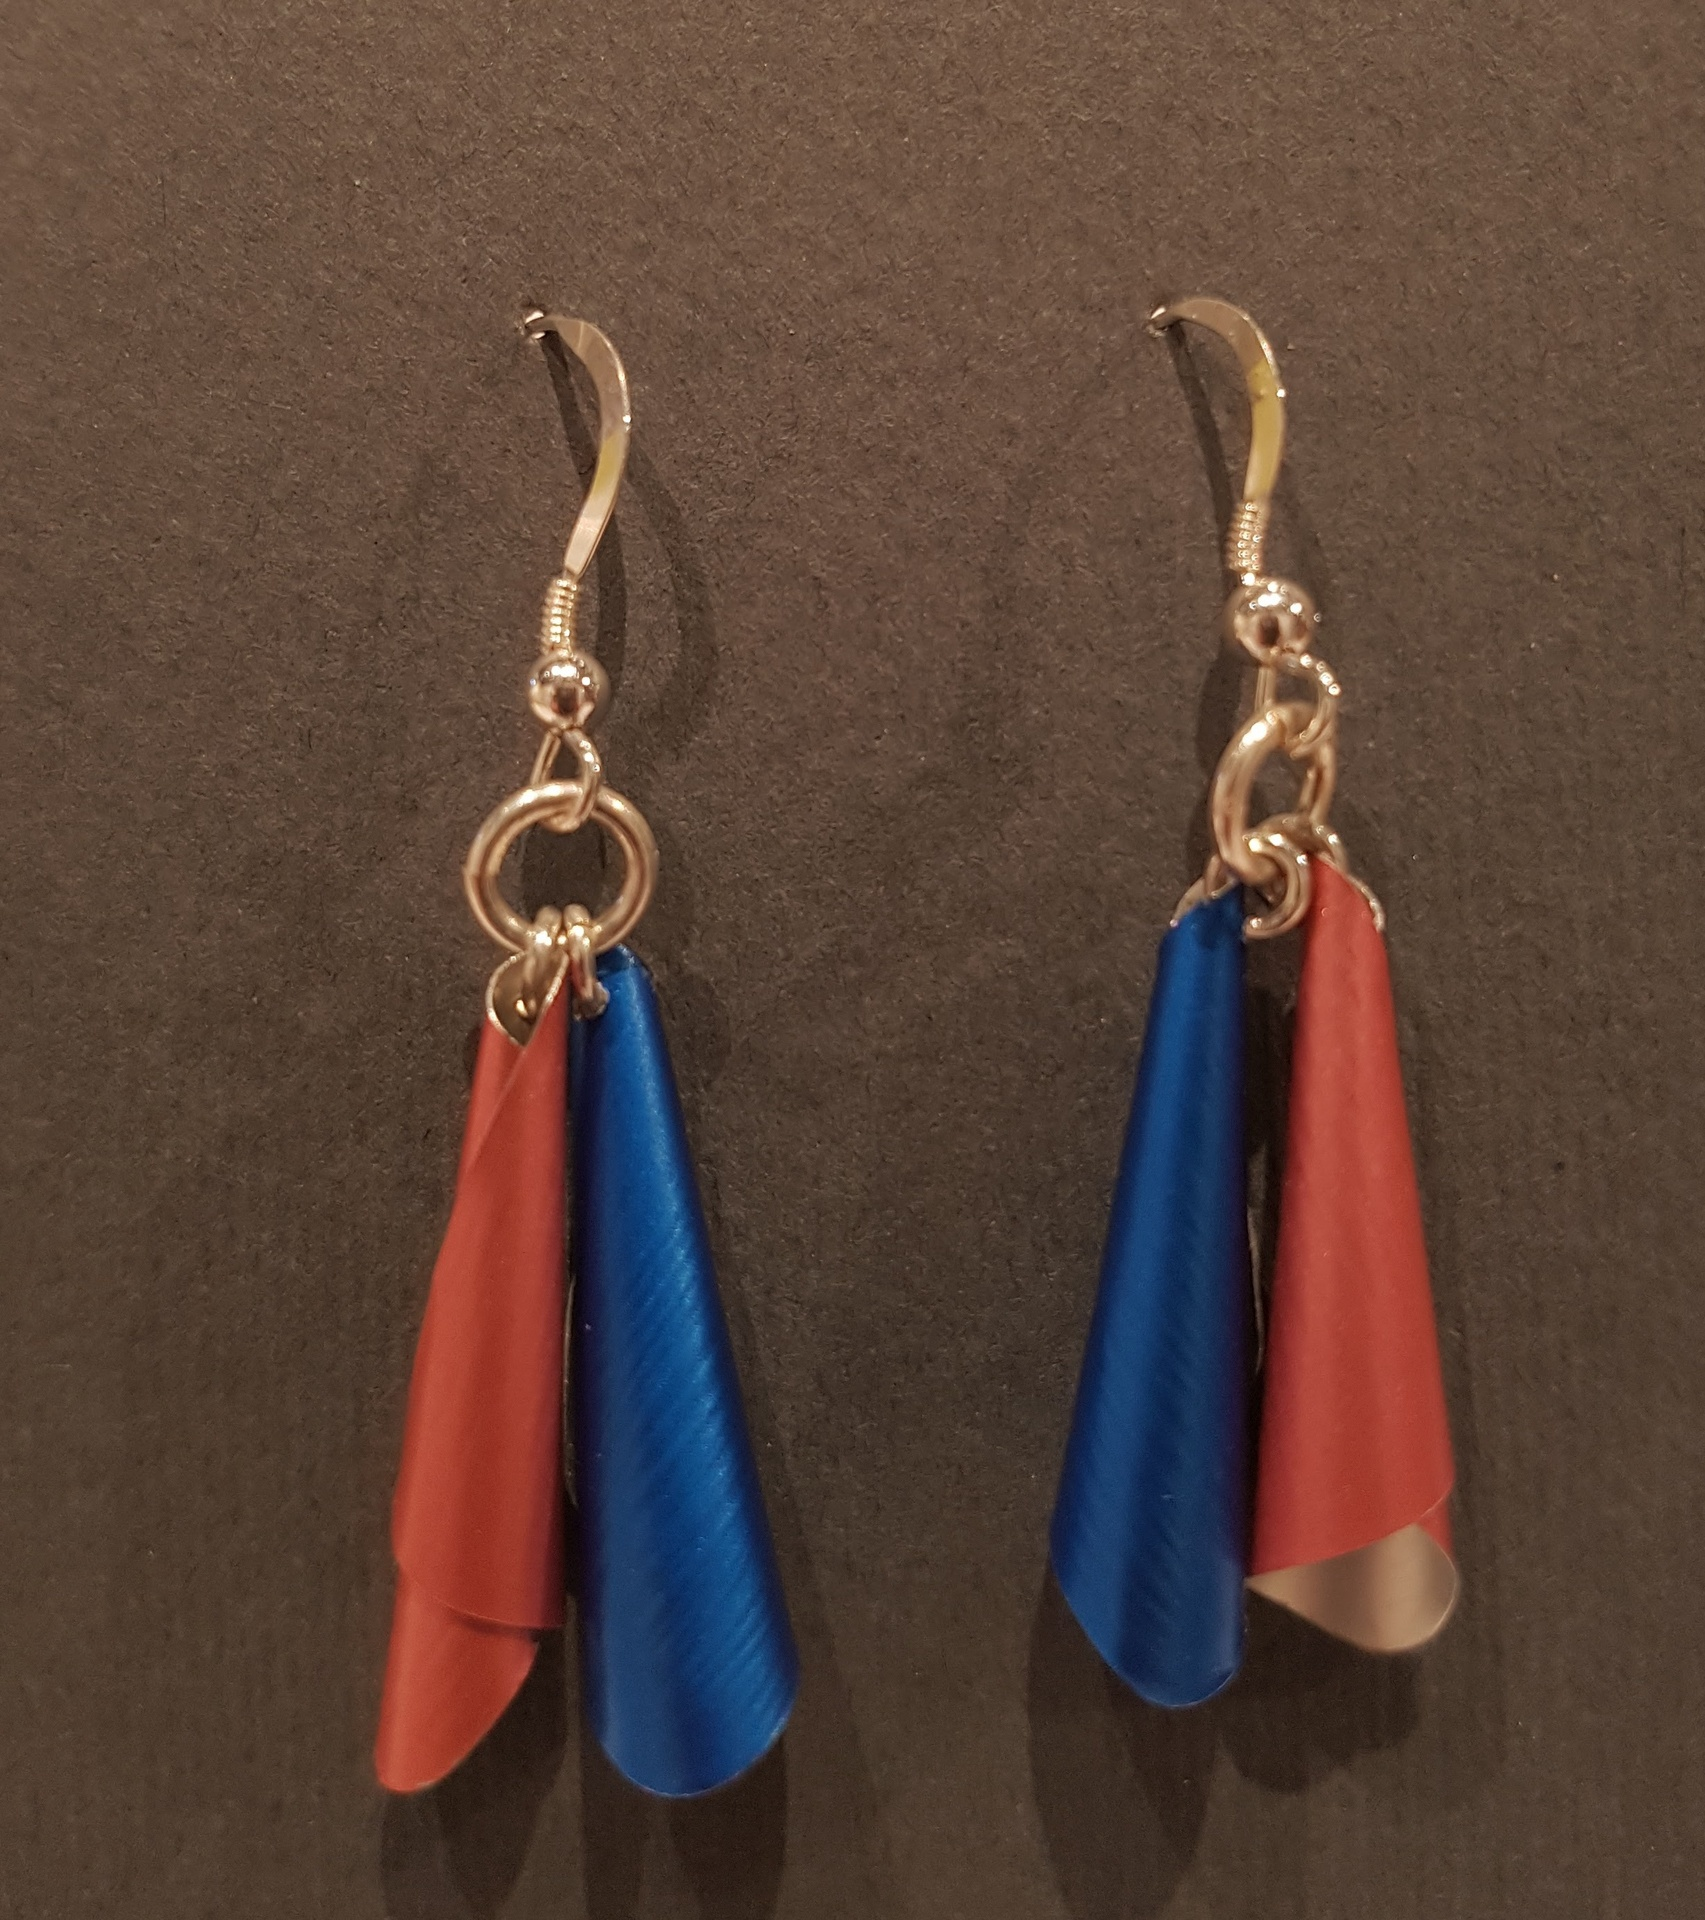 Electric Blue and Vintage Pink Earrings